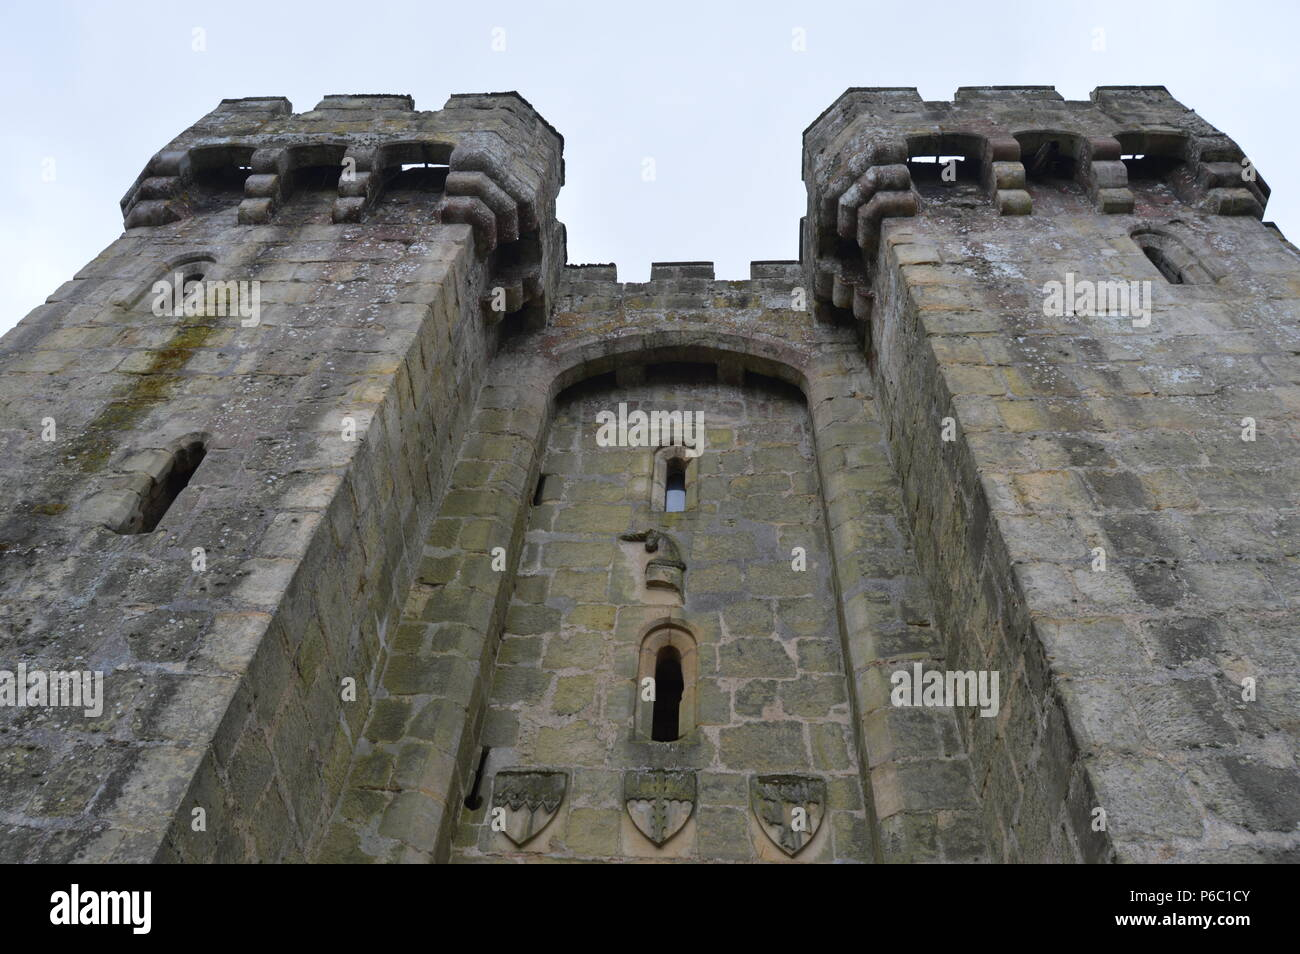 Low angle shot of a British castle's battlements from outside - Stock Image